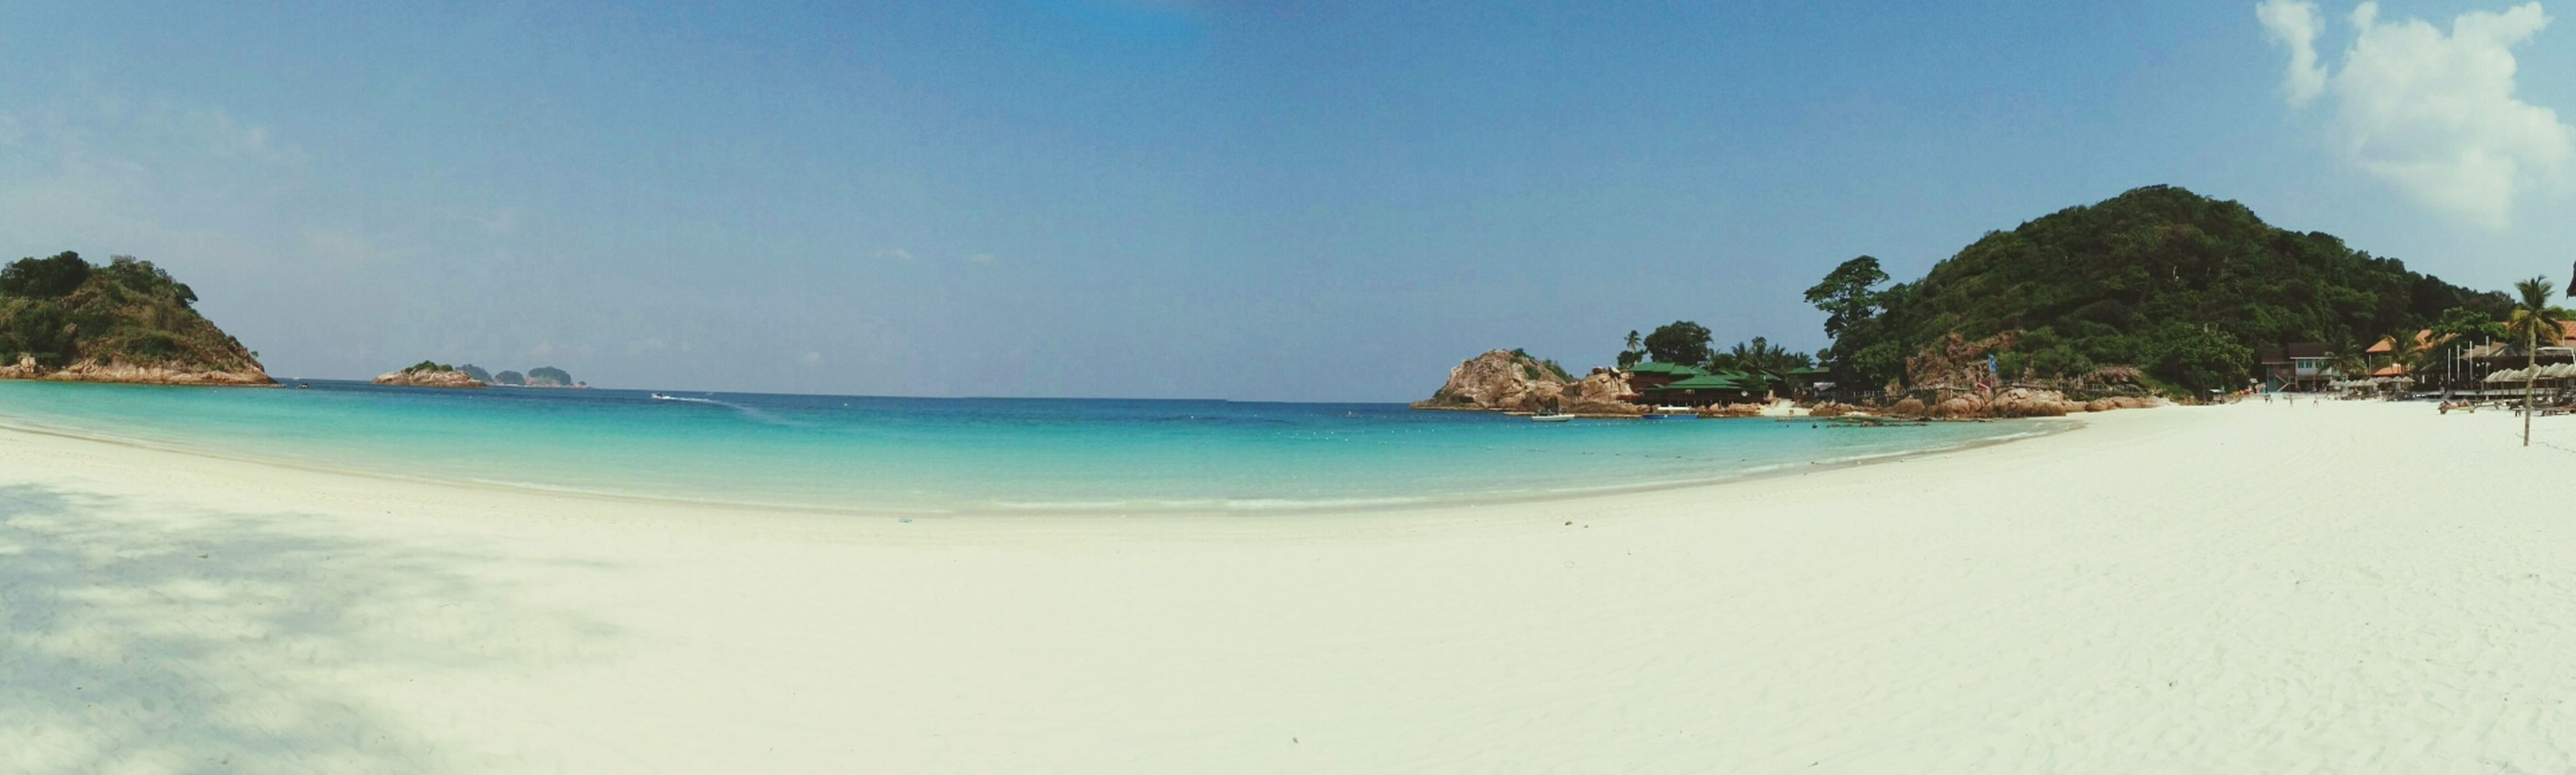 sea, beach, water, tranquil scene, horizon over water, scenics, tranquility, blue, beauty in nature, sand, shore, sky, nature, coastline, idyllic, clear sky, copy space, panoramic, day, vacations